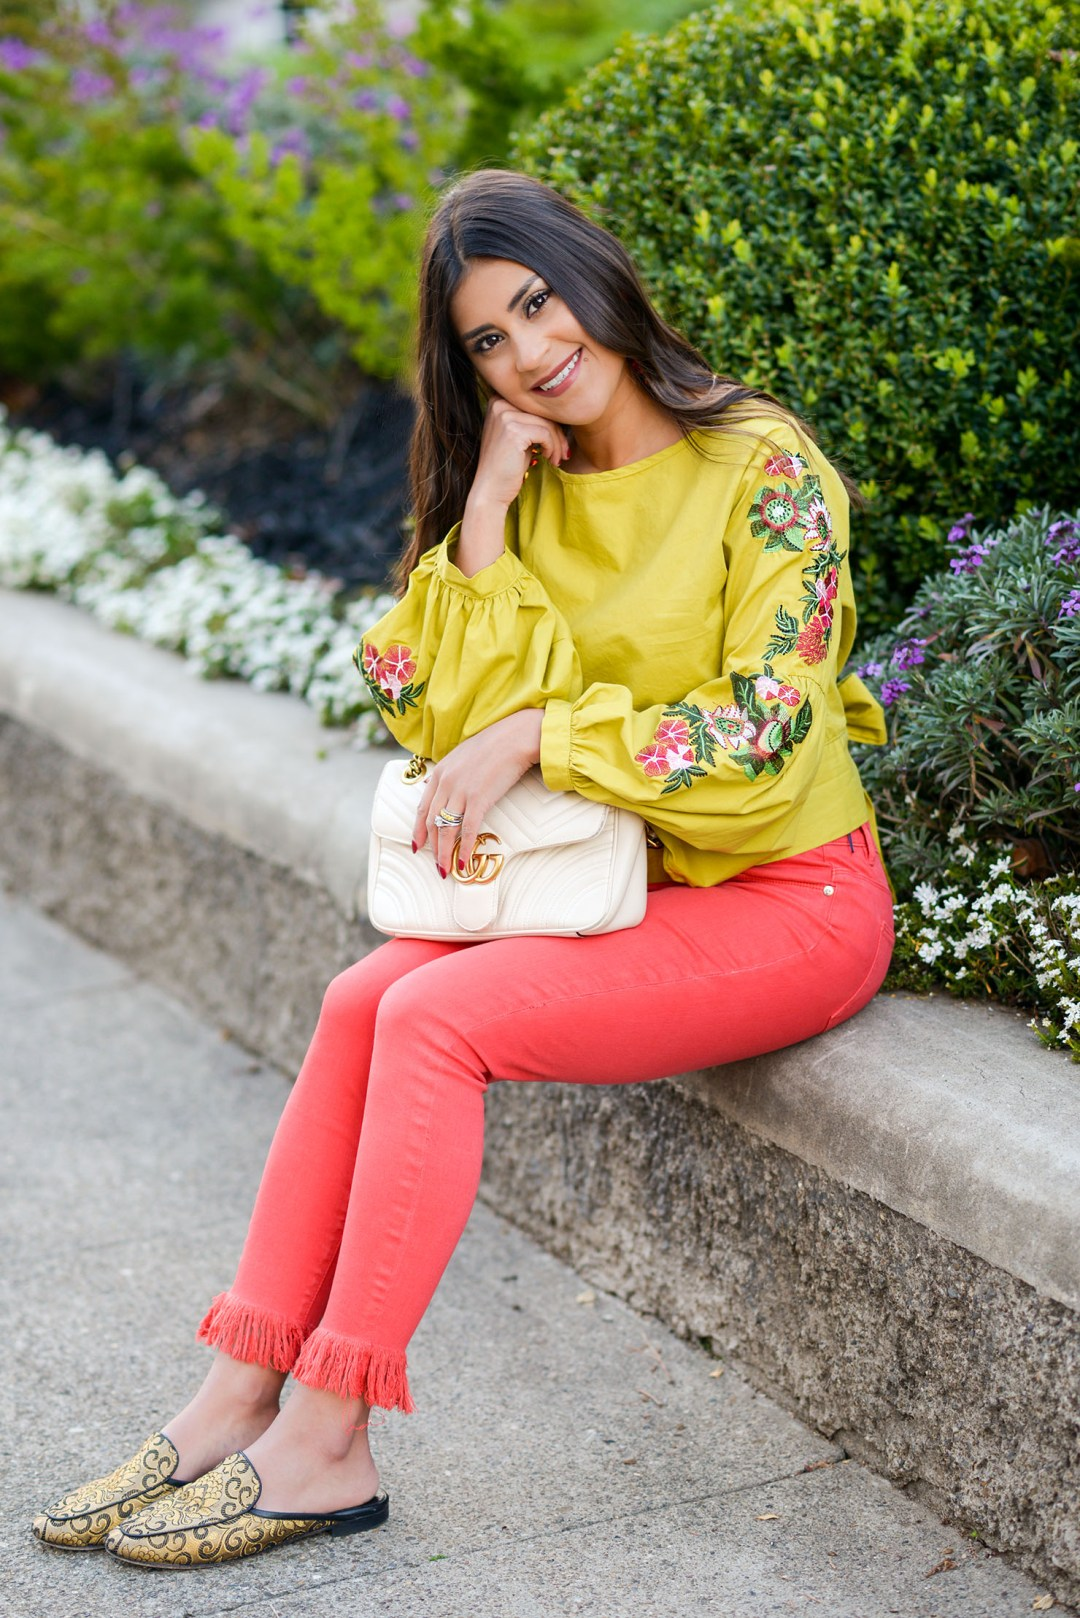 Lifestyle blogger Kelsey Kaplan of Kelsey Kaplan Fashion wearing chartreuse top and white gucci purse